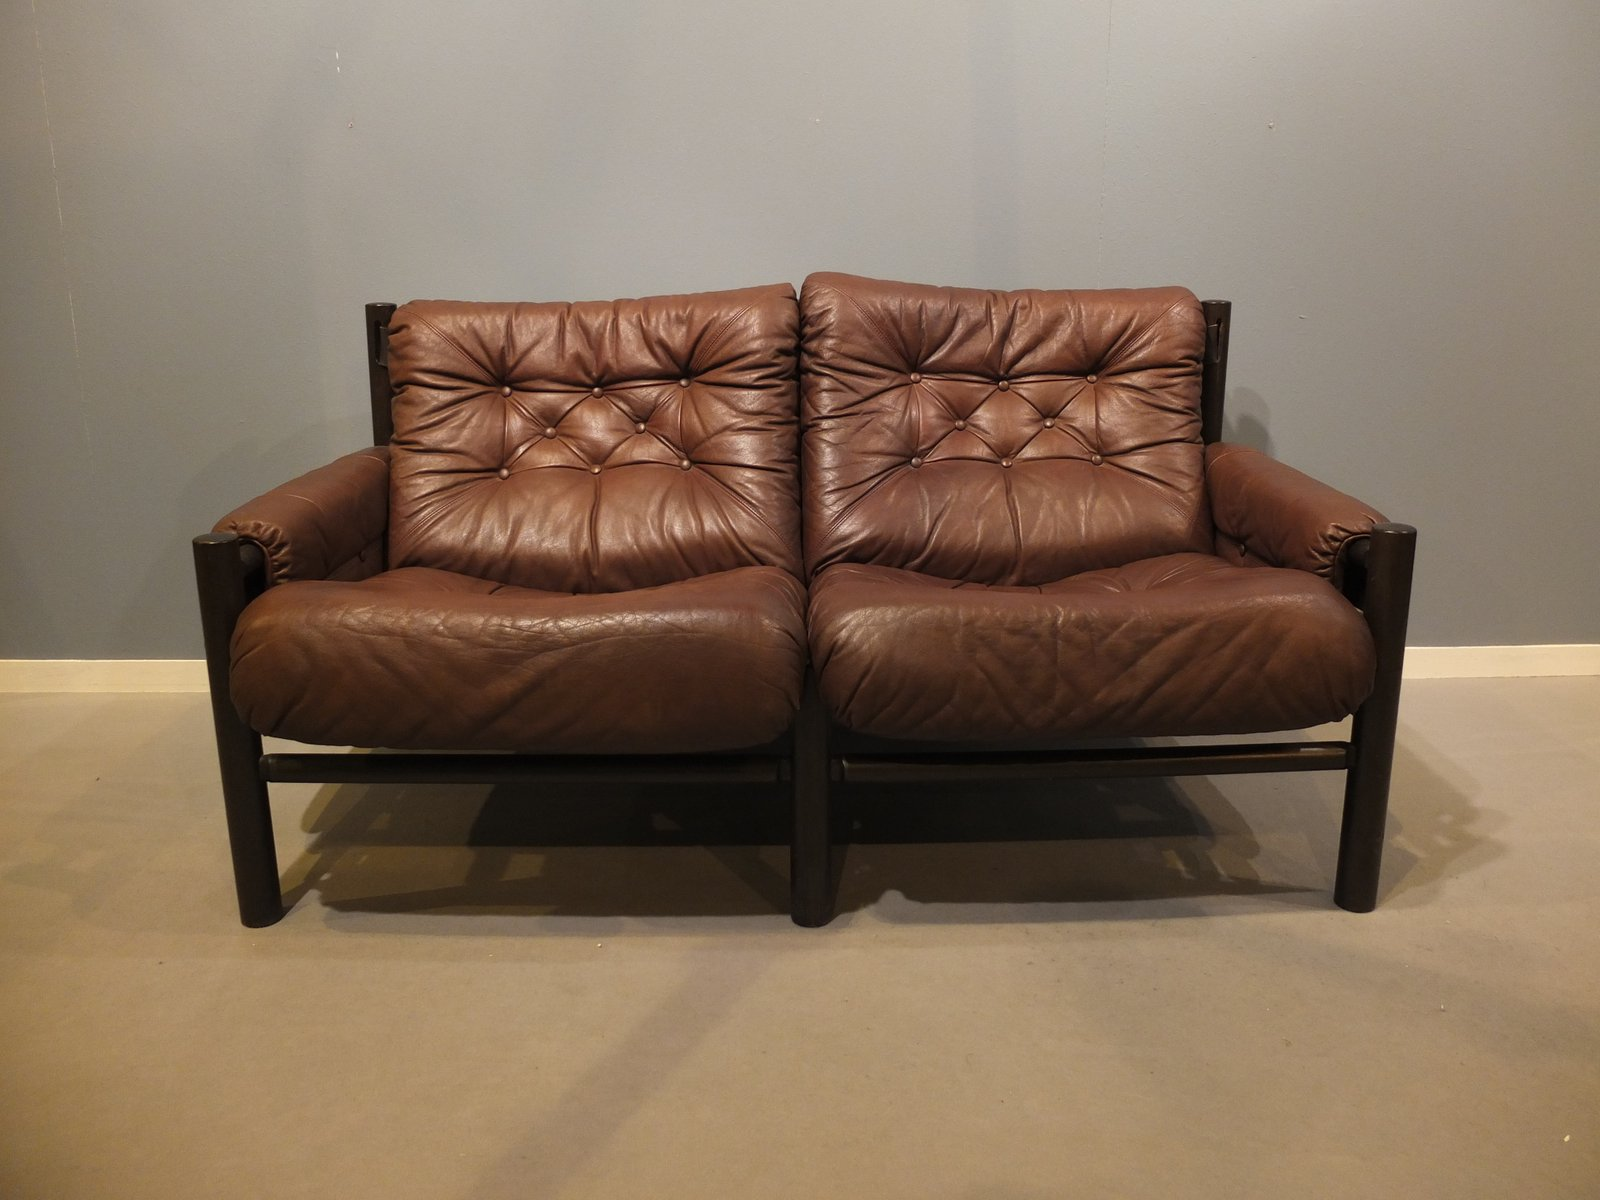 mid century zwei sitzer safari sofa von torbj rn afdal f r bruksbo bei pamono kaufen. Black Bedroom Furniture Sets. Home Design Ideas